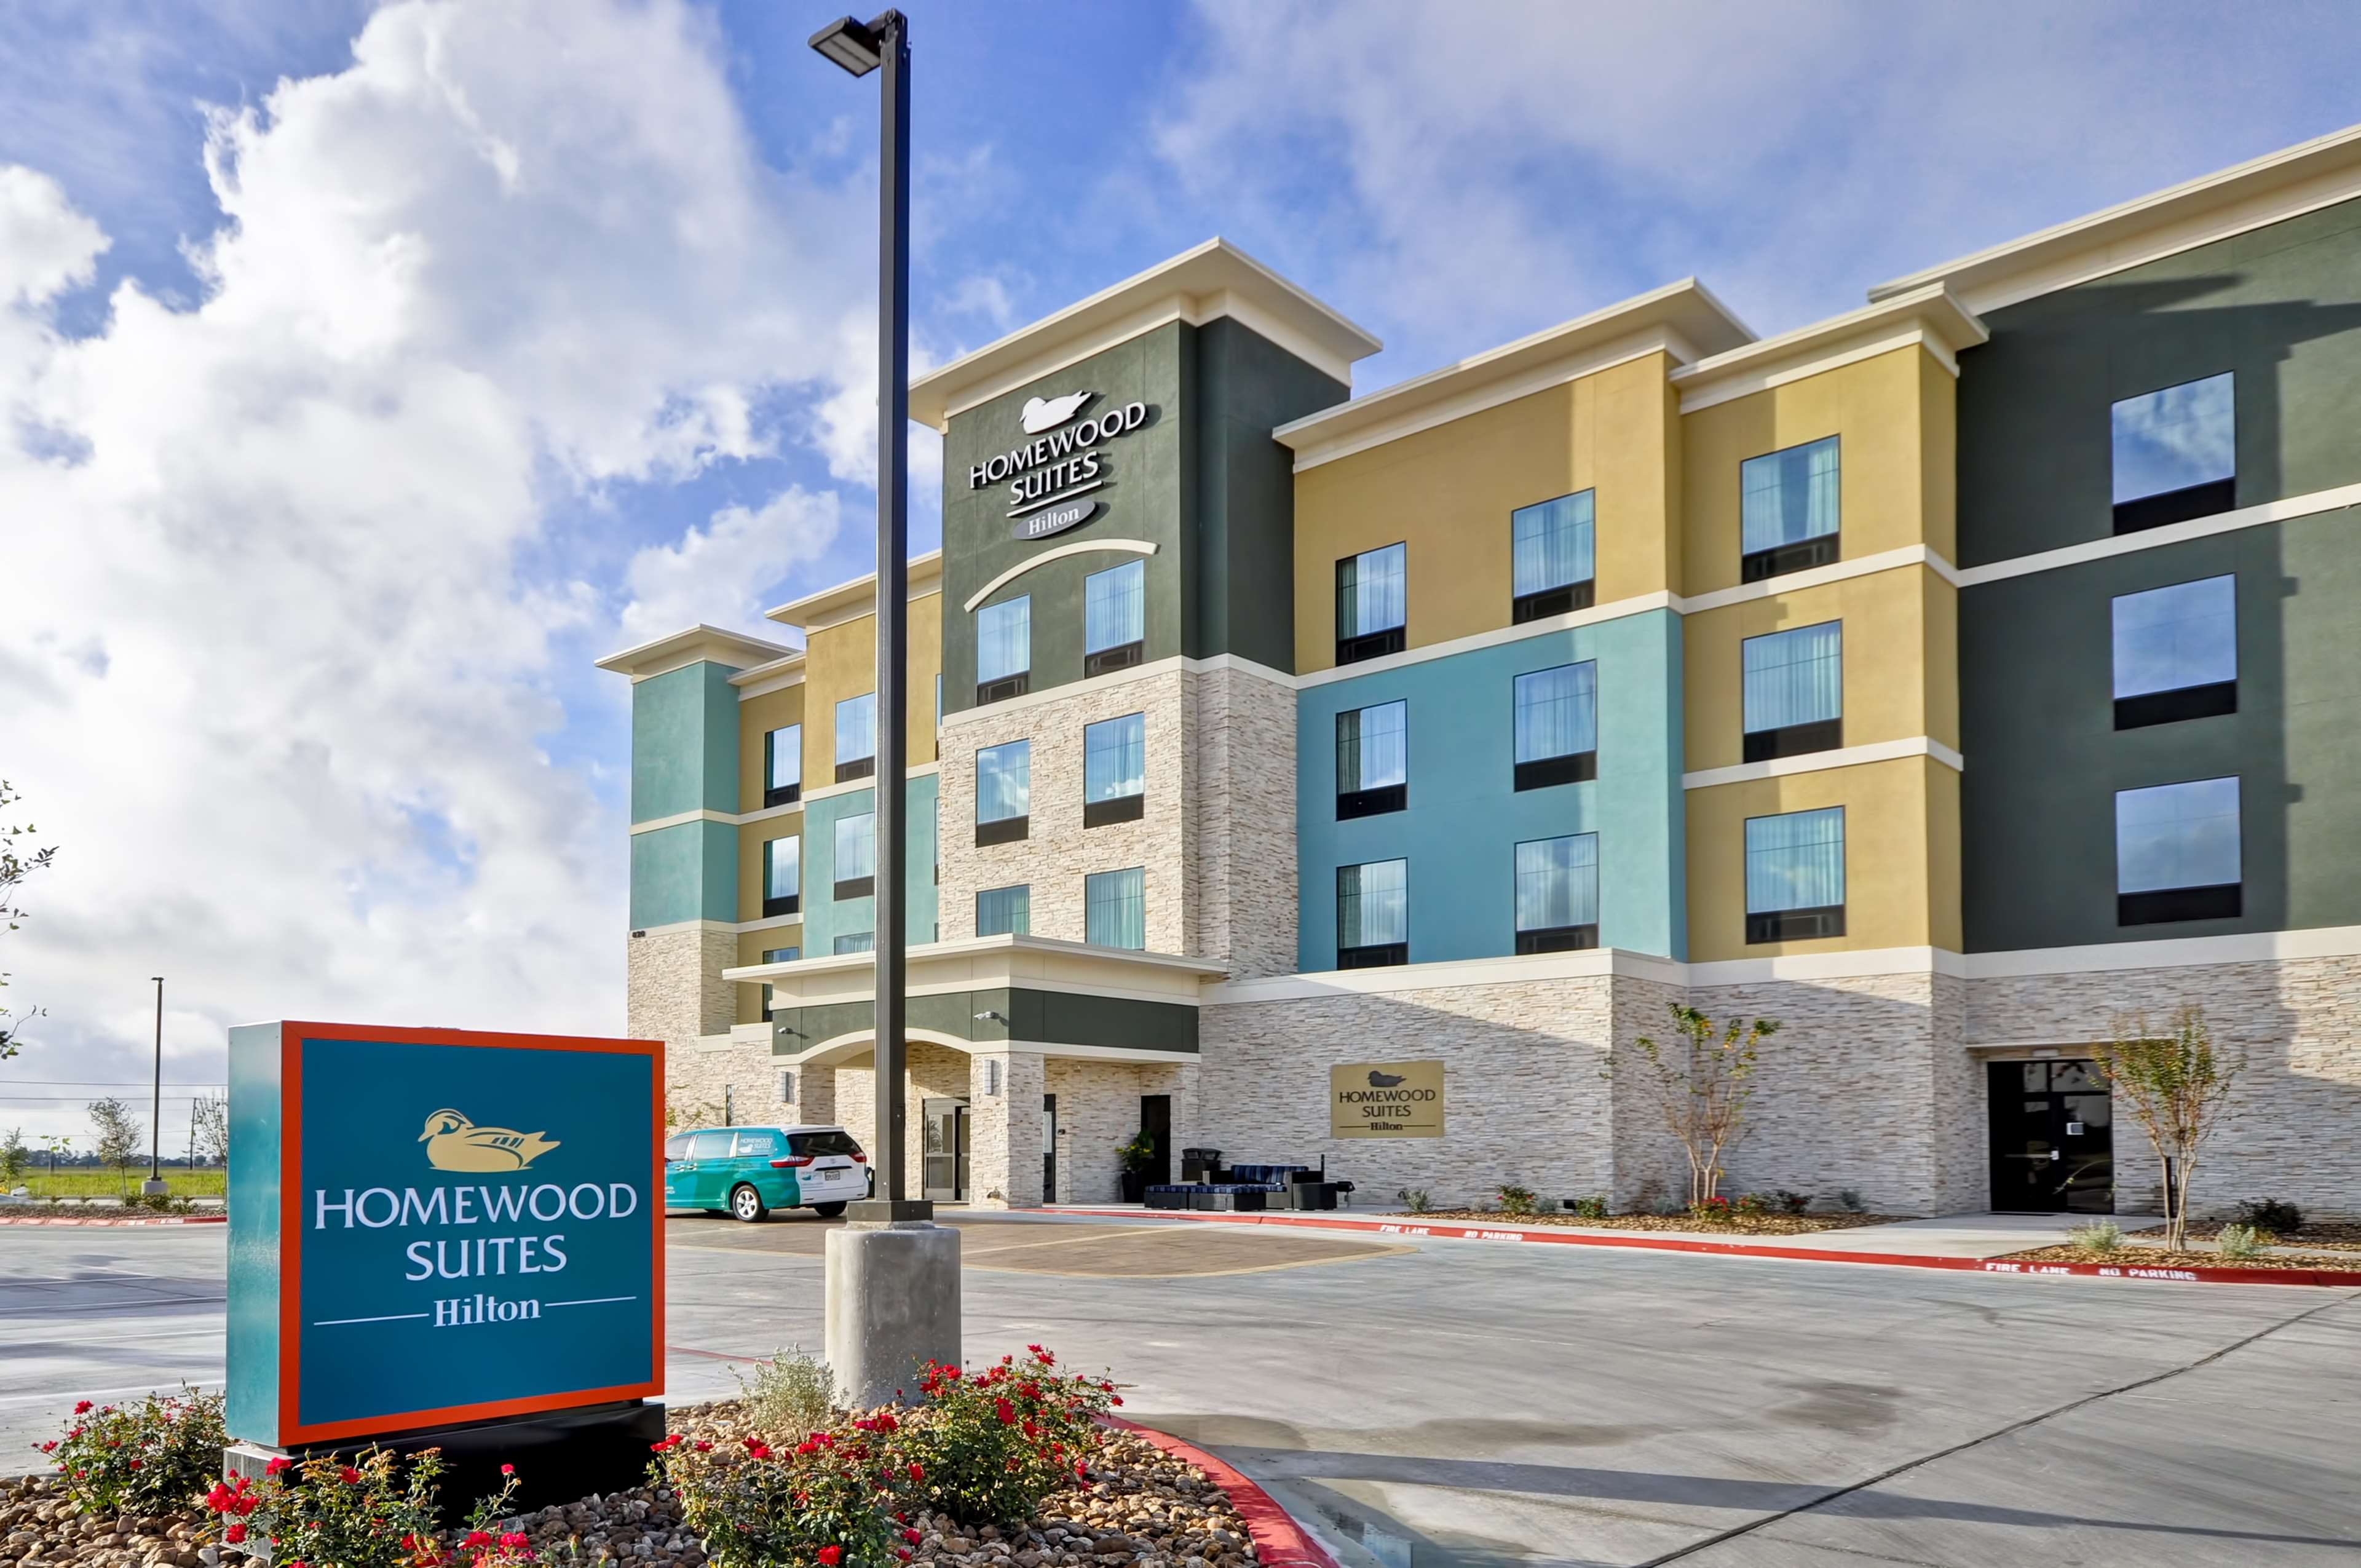 Homewood Suites by Hilton New Braunfels image 0